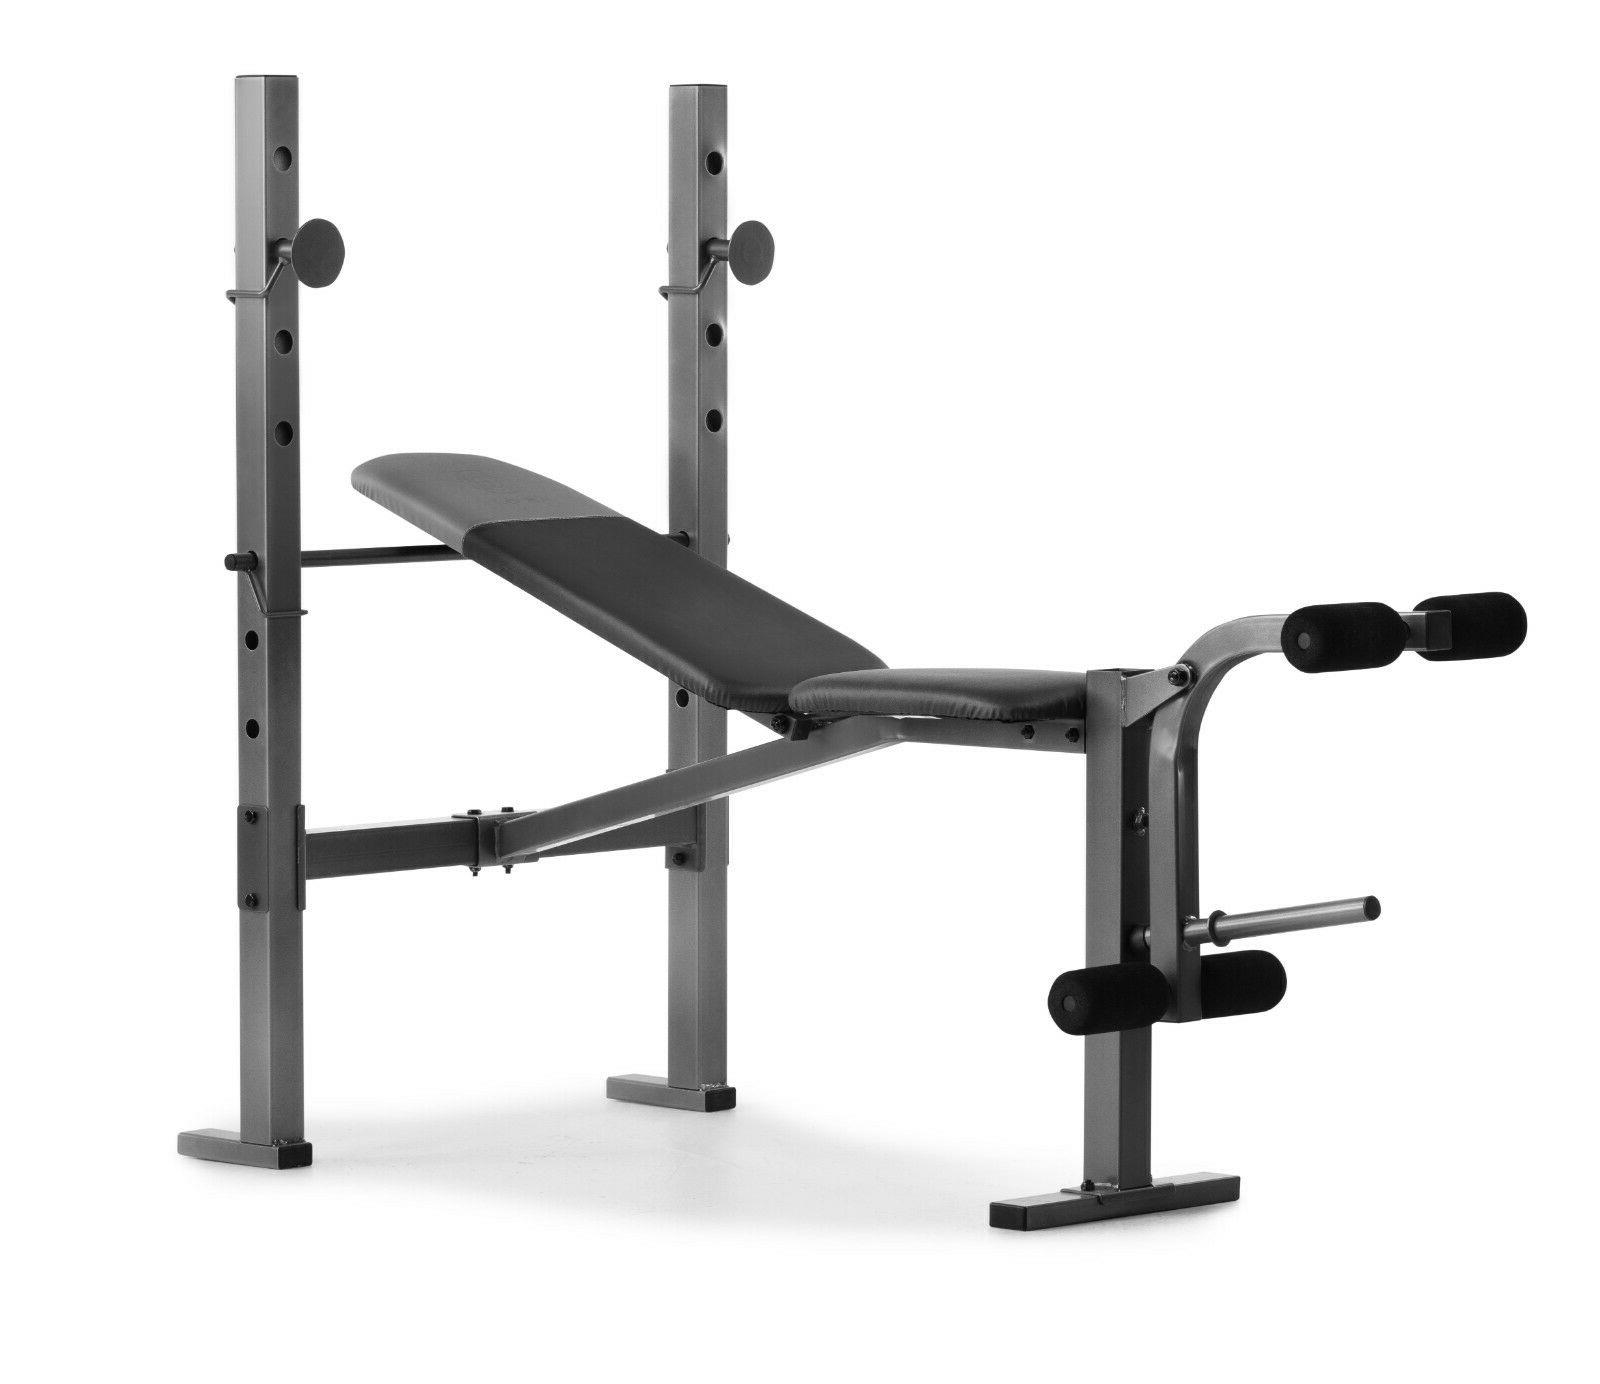 golds xr 6 1 multi position workout